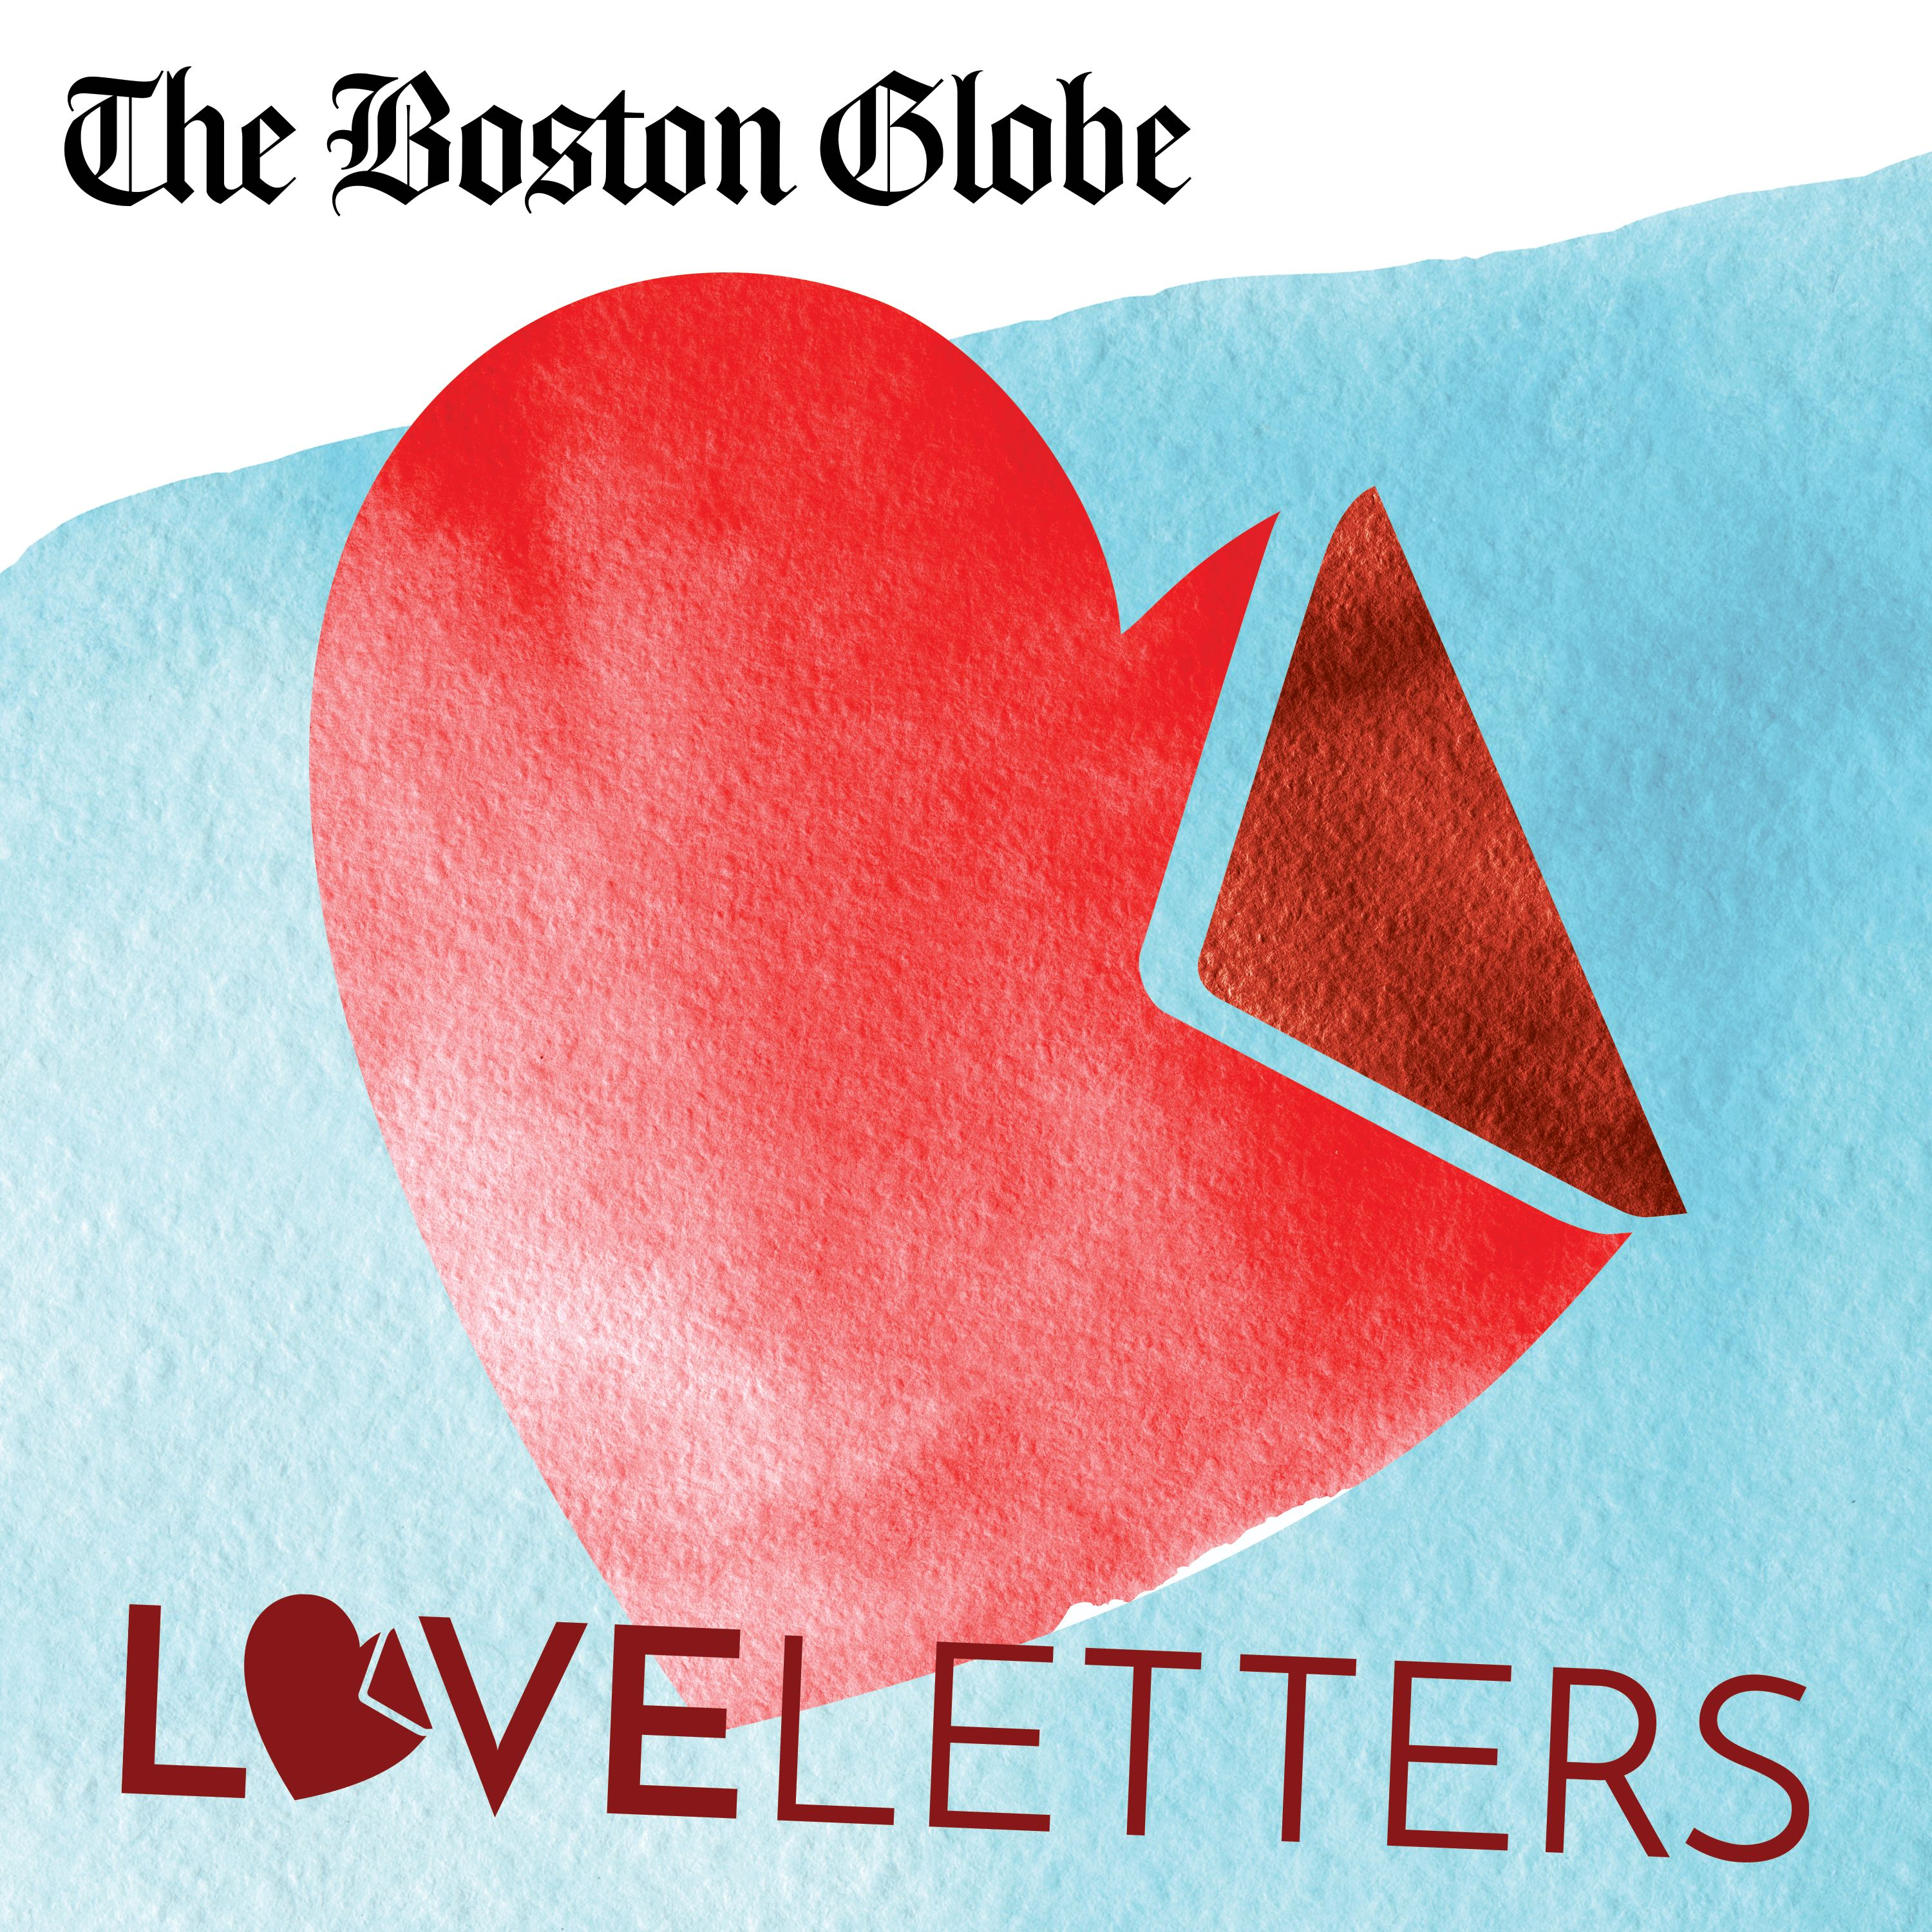 Listen to the Love Letters Podcast - Love Letters